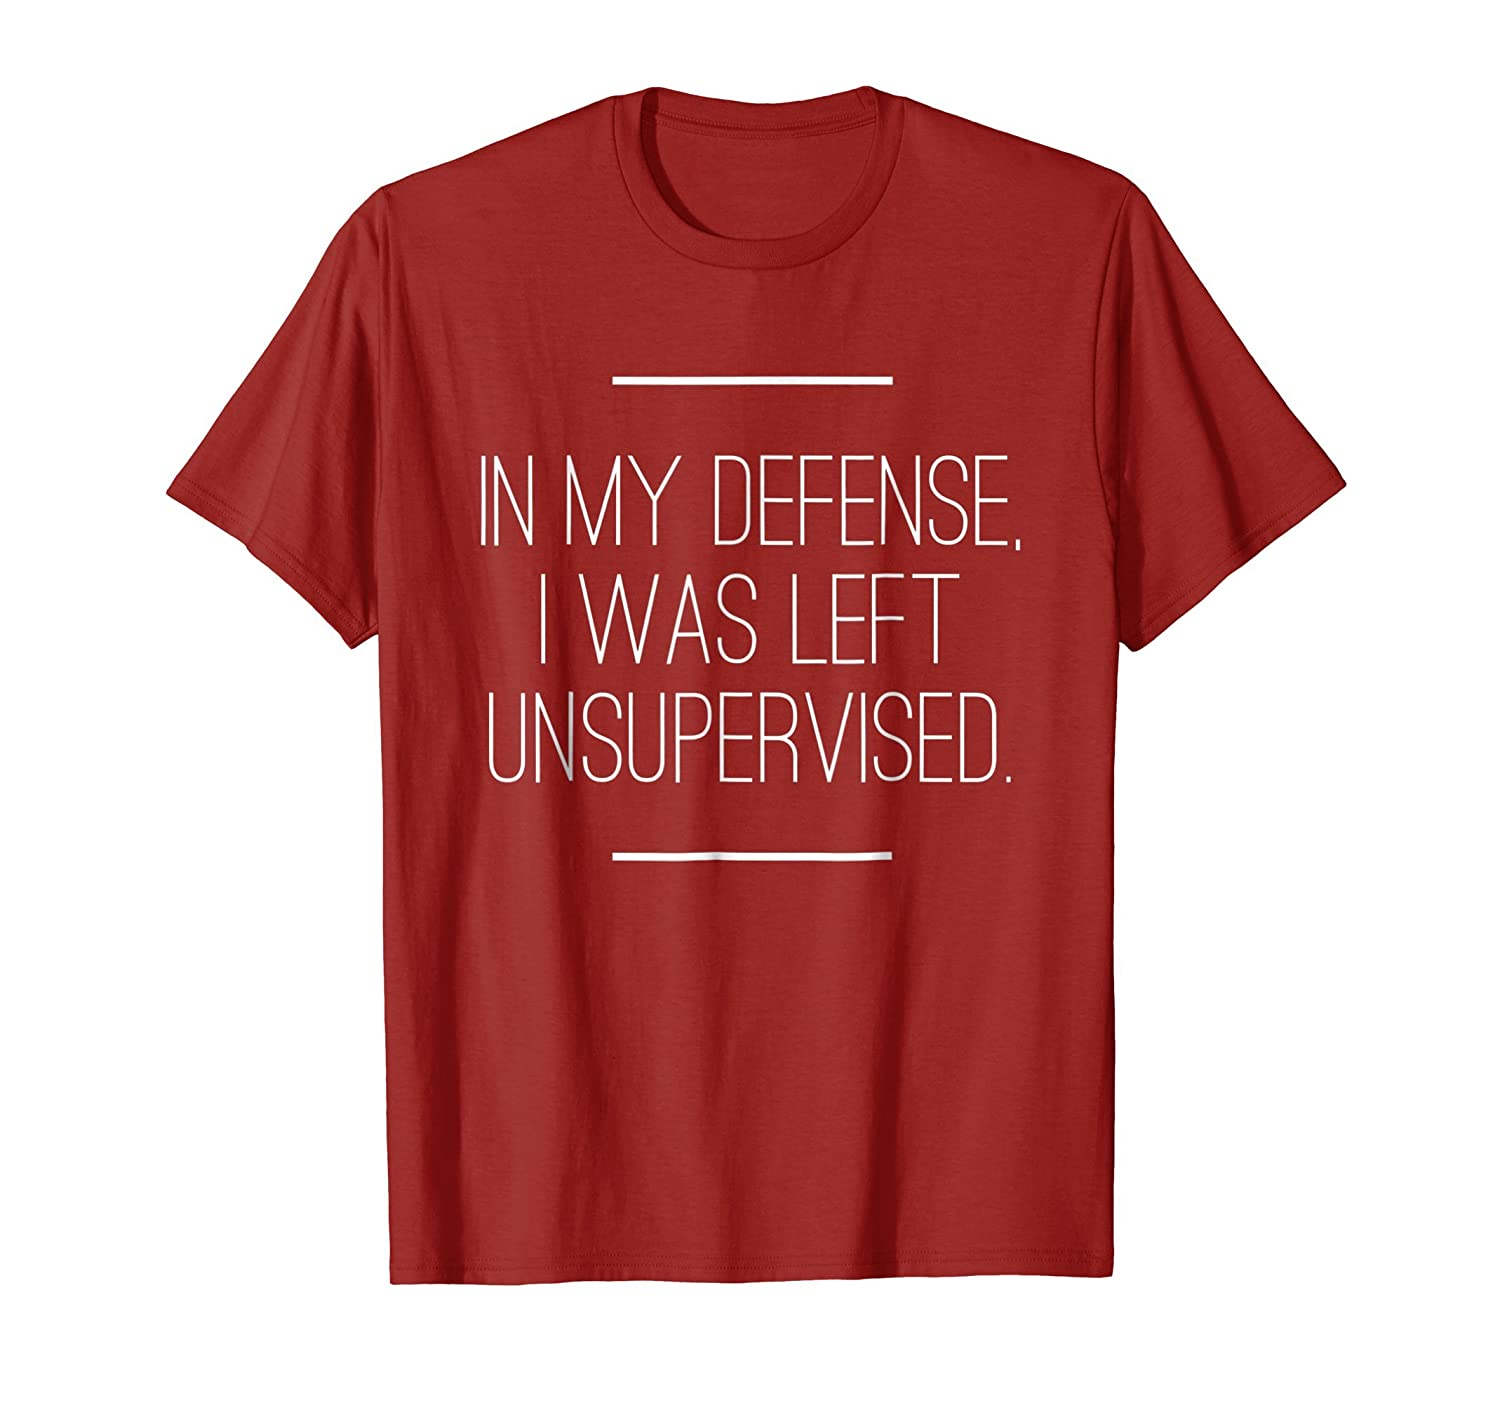 In my defense, I was left unsupervised T Shirt